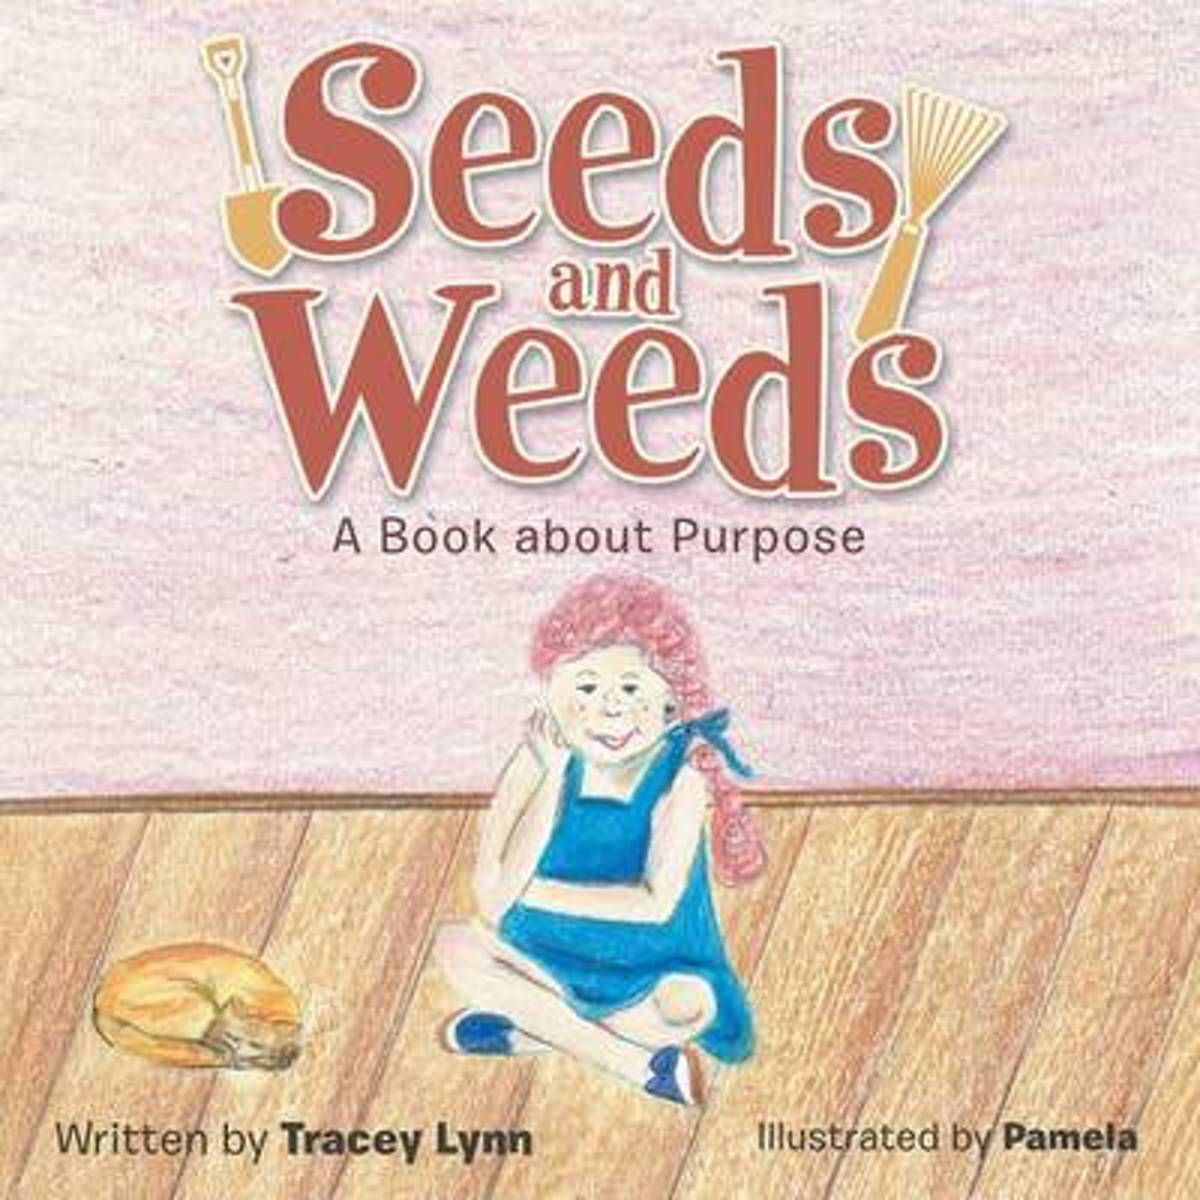 Seeds and Weeds